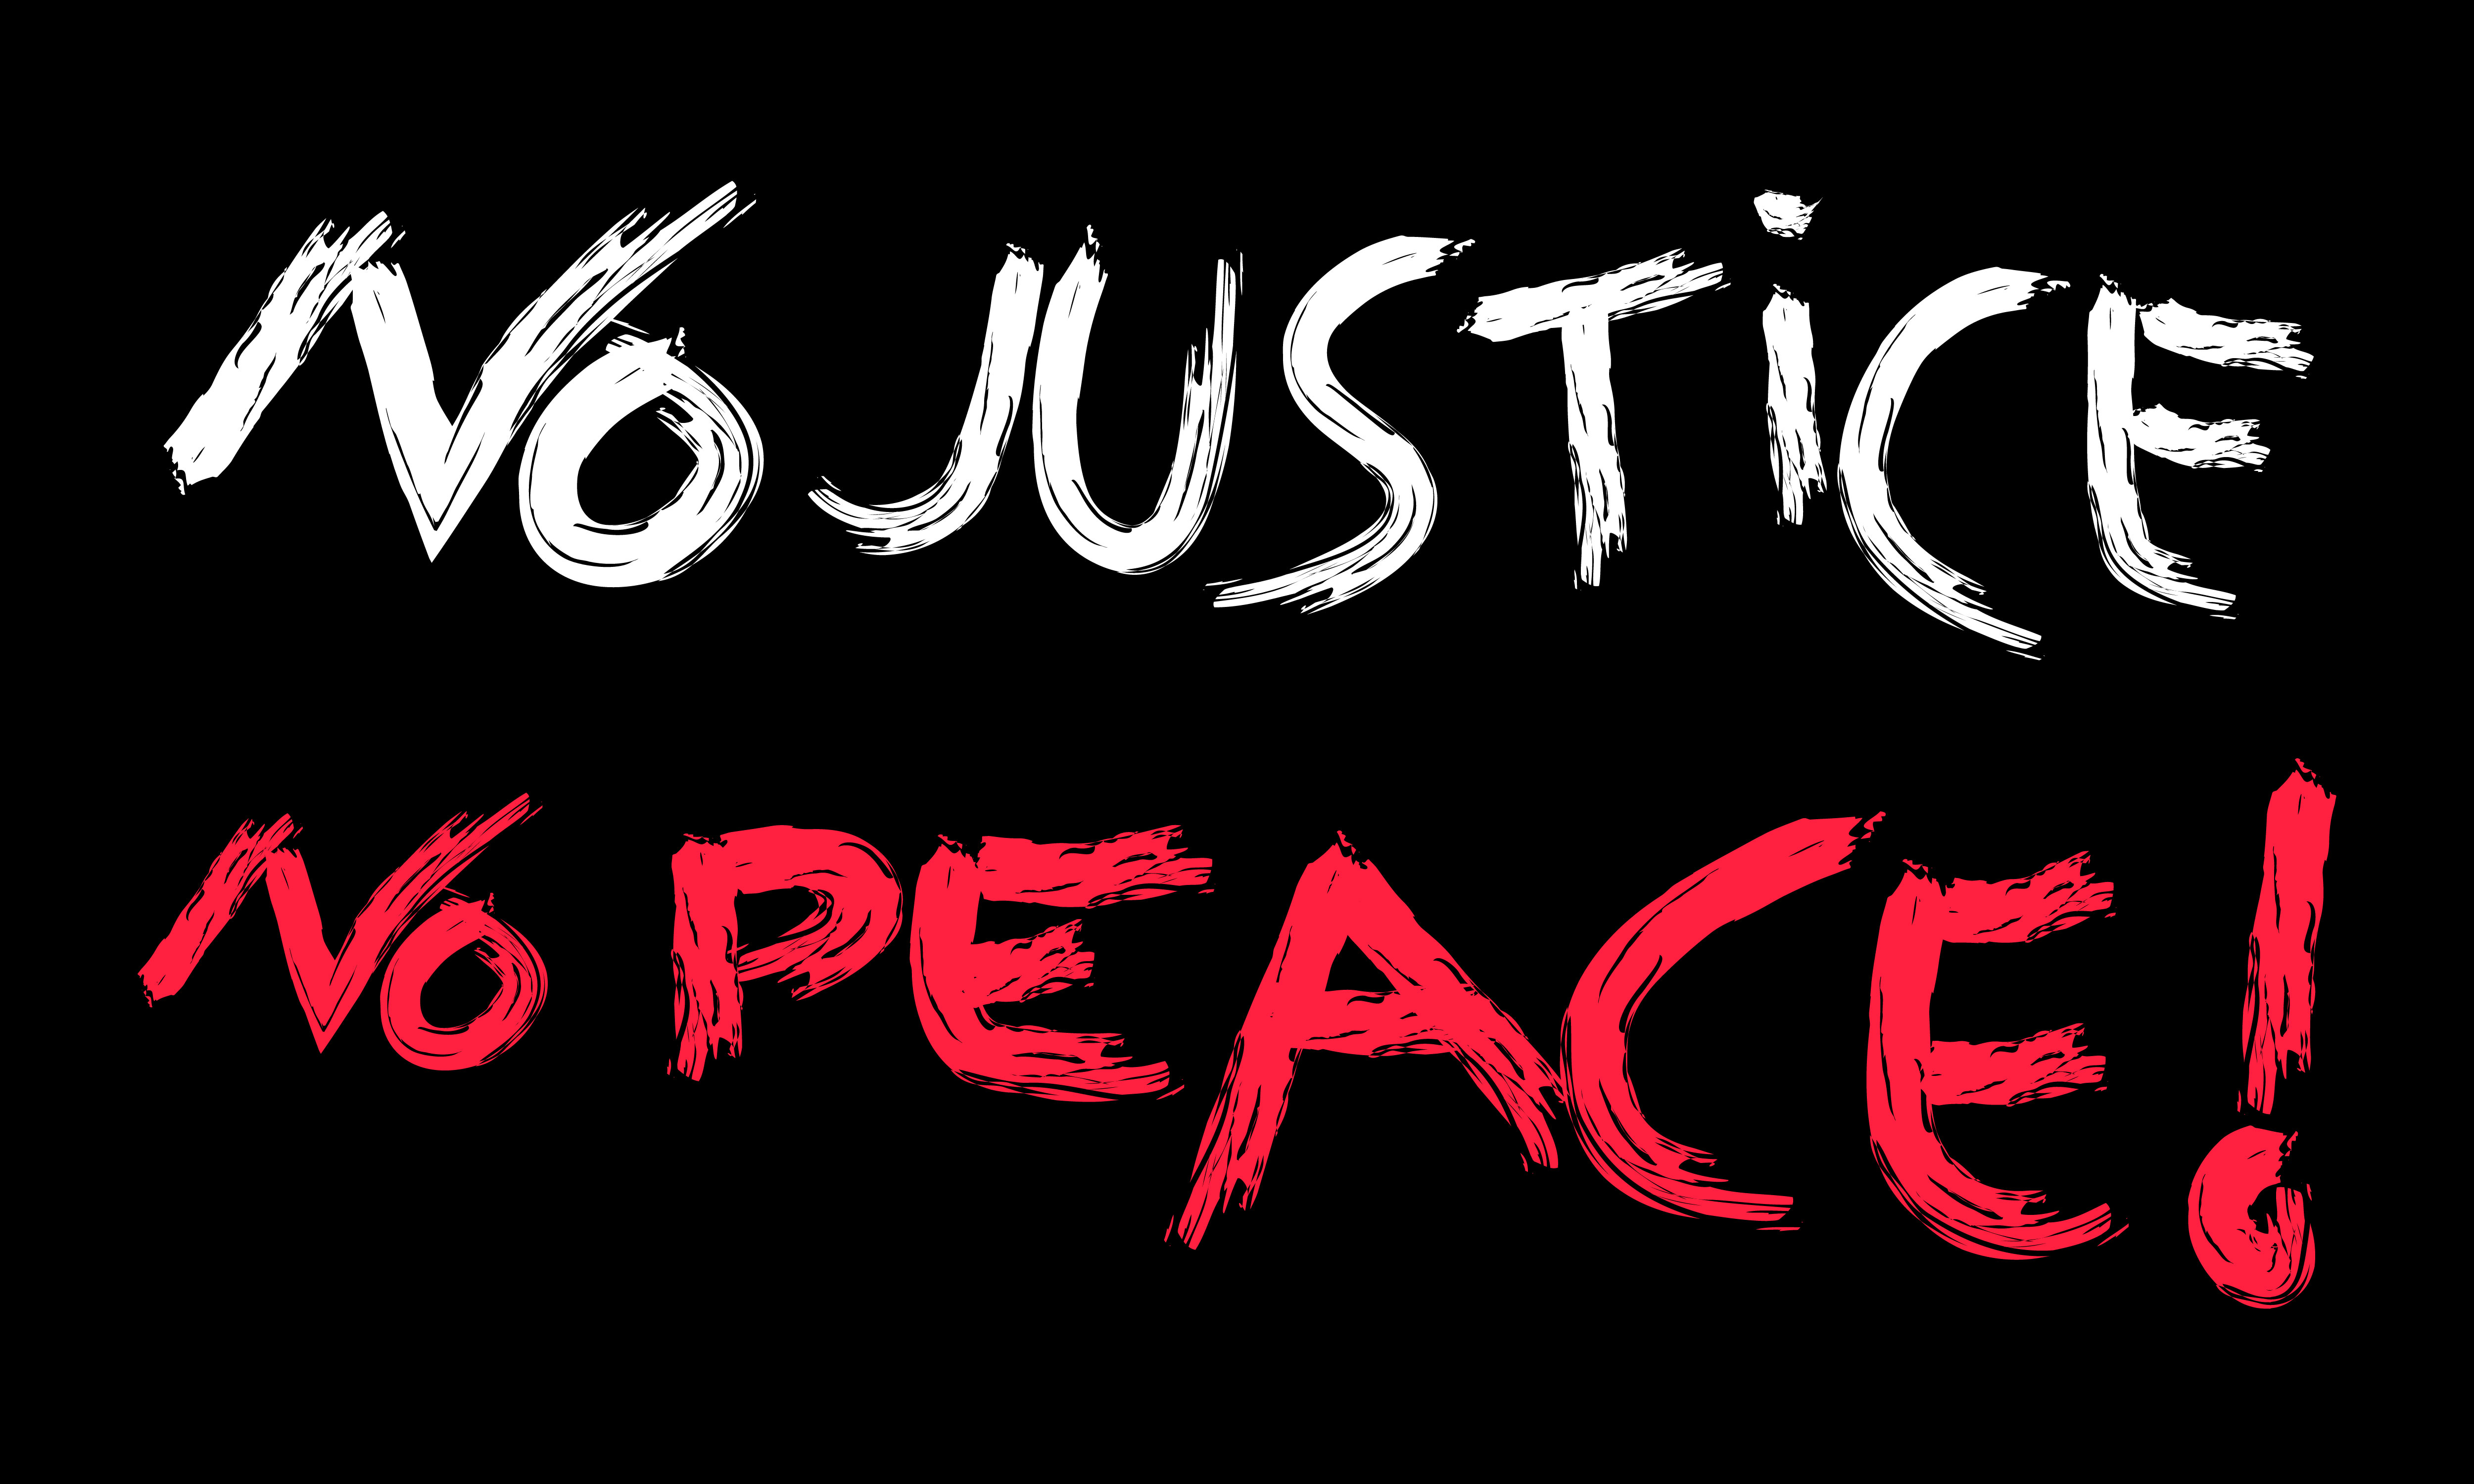 Download Free No Justice No Peace Quotes For Justice Graphic By Be Young for Cricut Explore, Silhouette and other cutting machines.